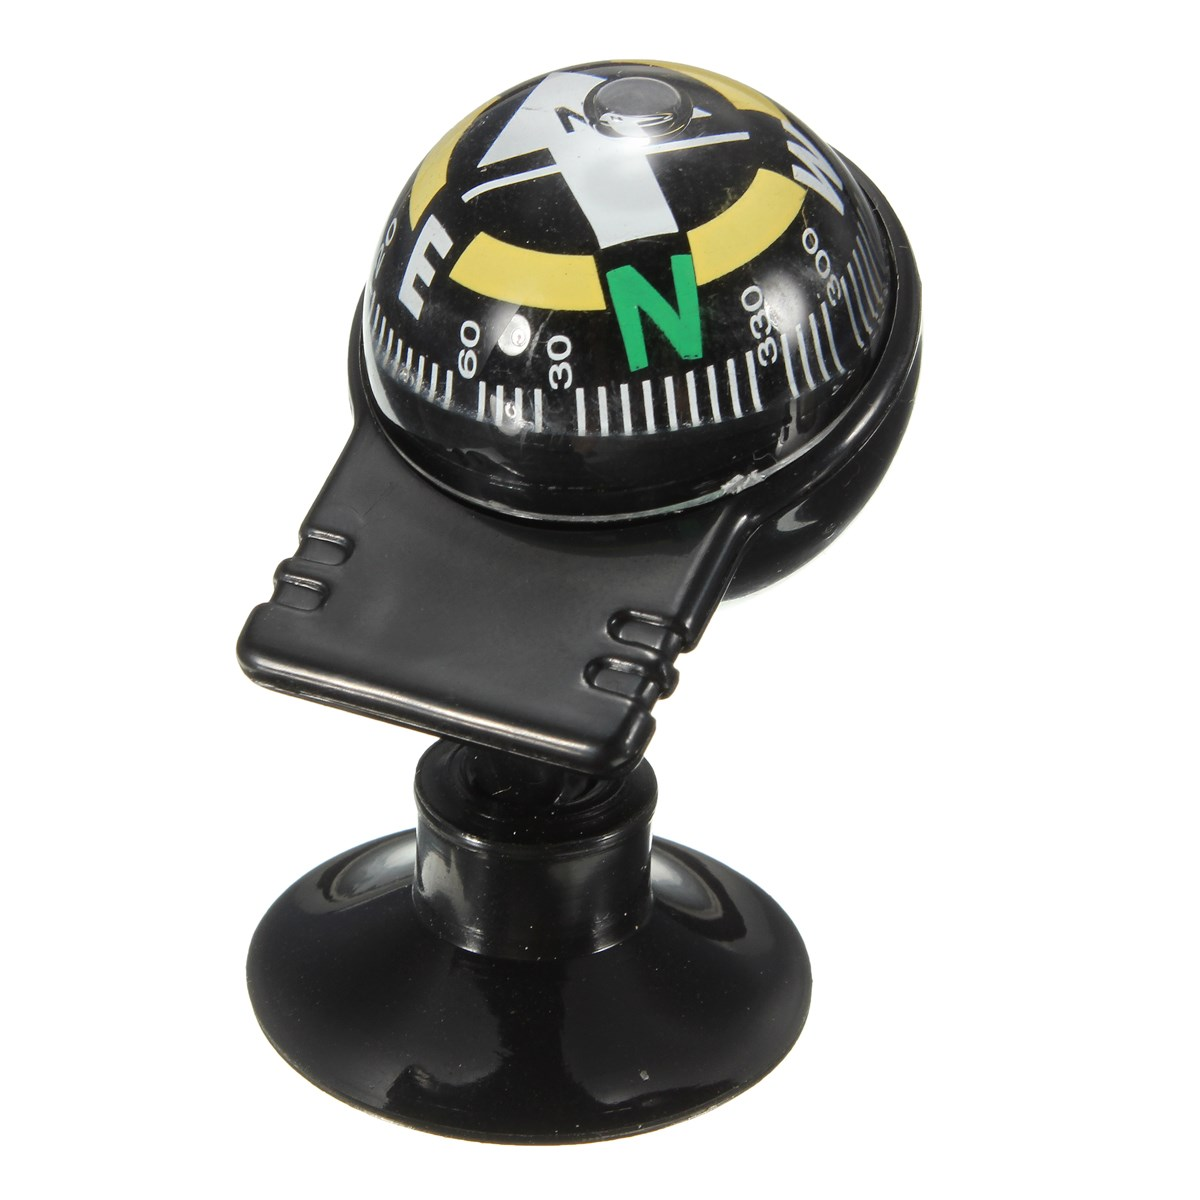 1PCS 6 x 3 x 3 cm for Pocket Ball Dashboard Dash Mount Navigation For Compass Car Boat Truck Suction Black(China (Mainland))